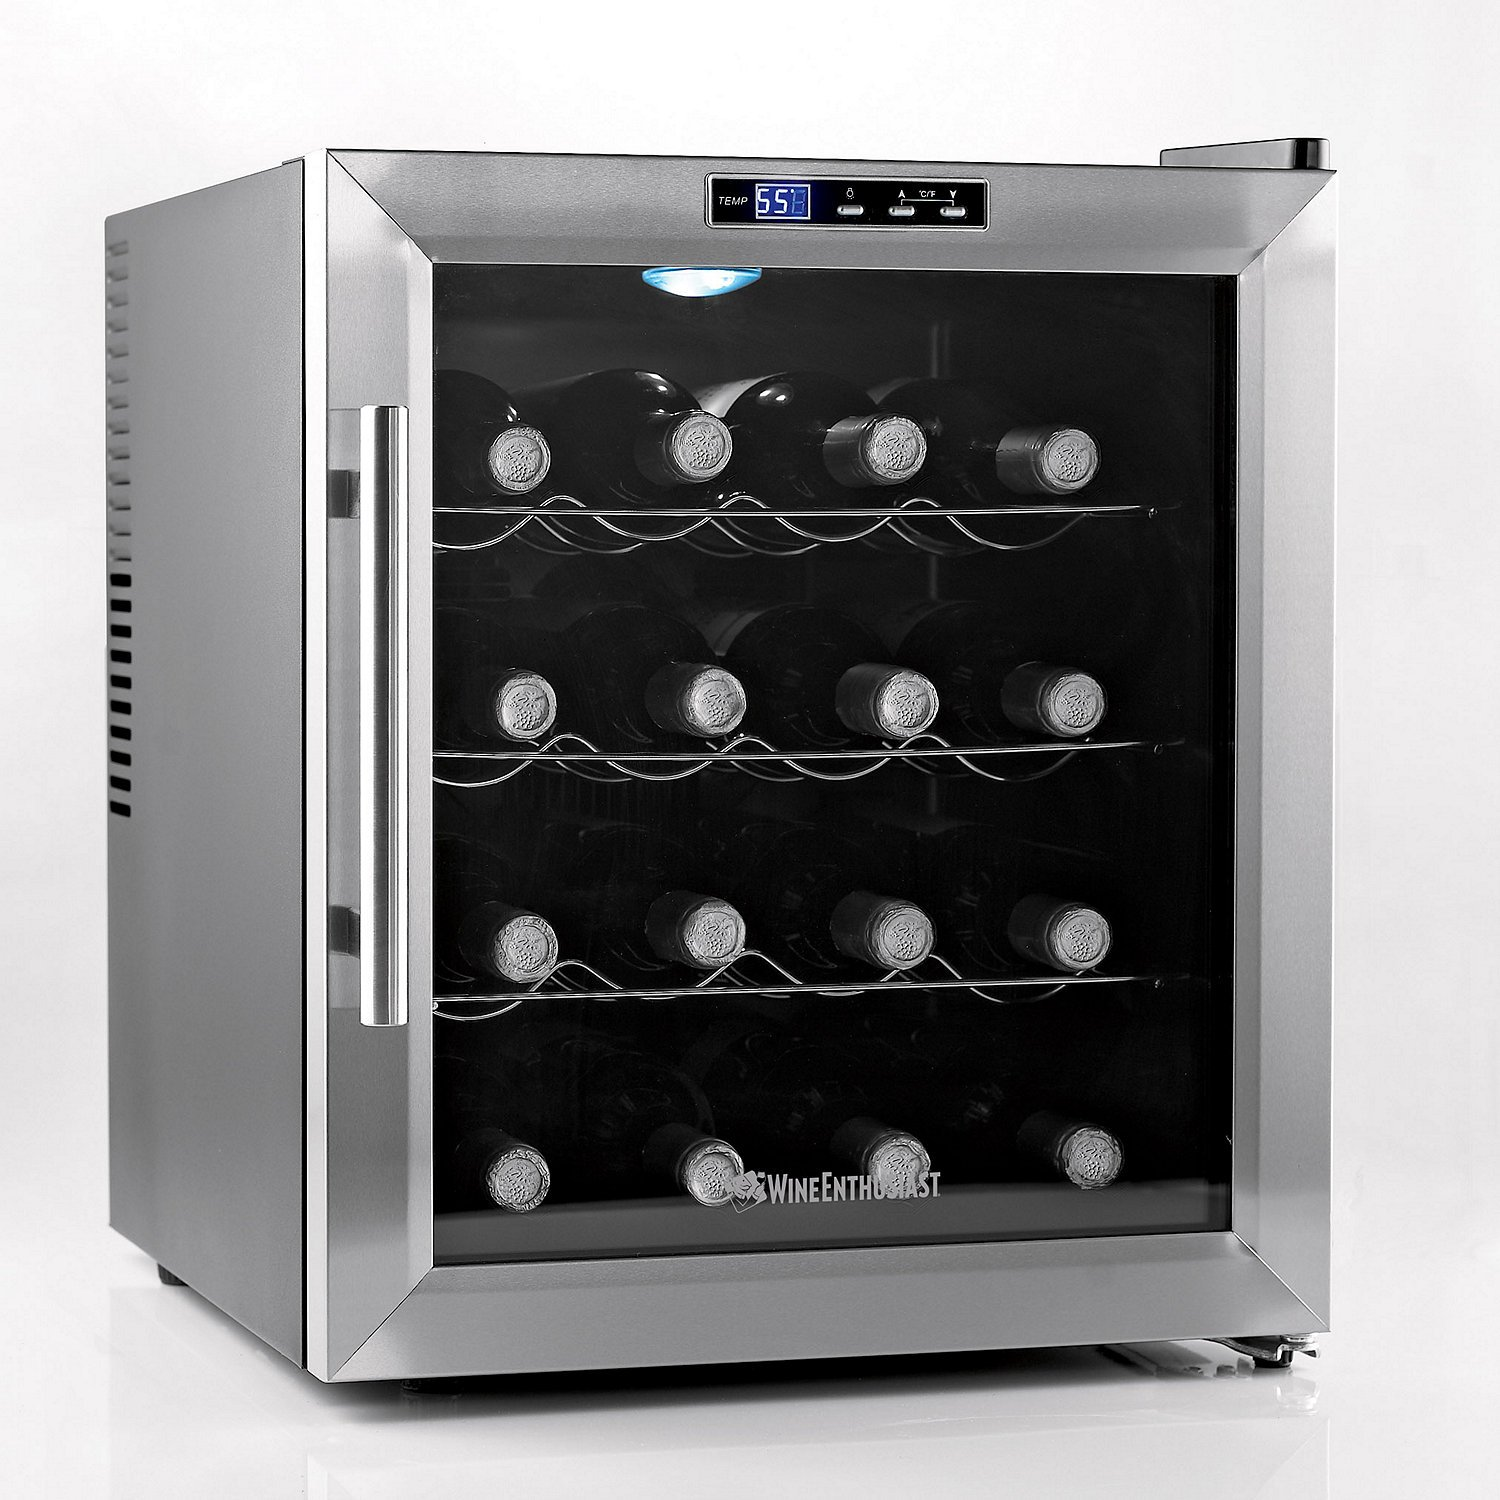 Wine Enthusiast 272 02 17 Silent 16 Bottle Touchscreen Wine Cooler, Stainless Steel